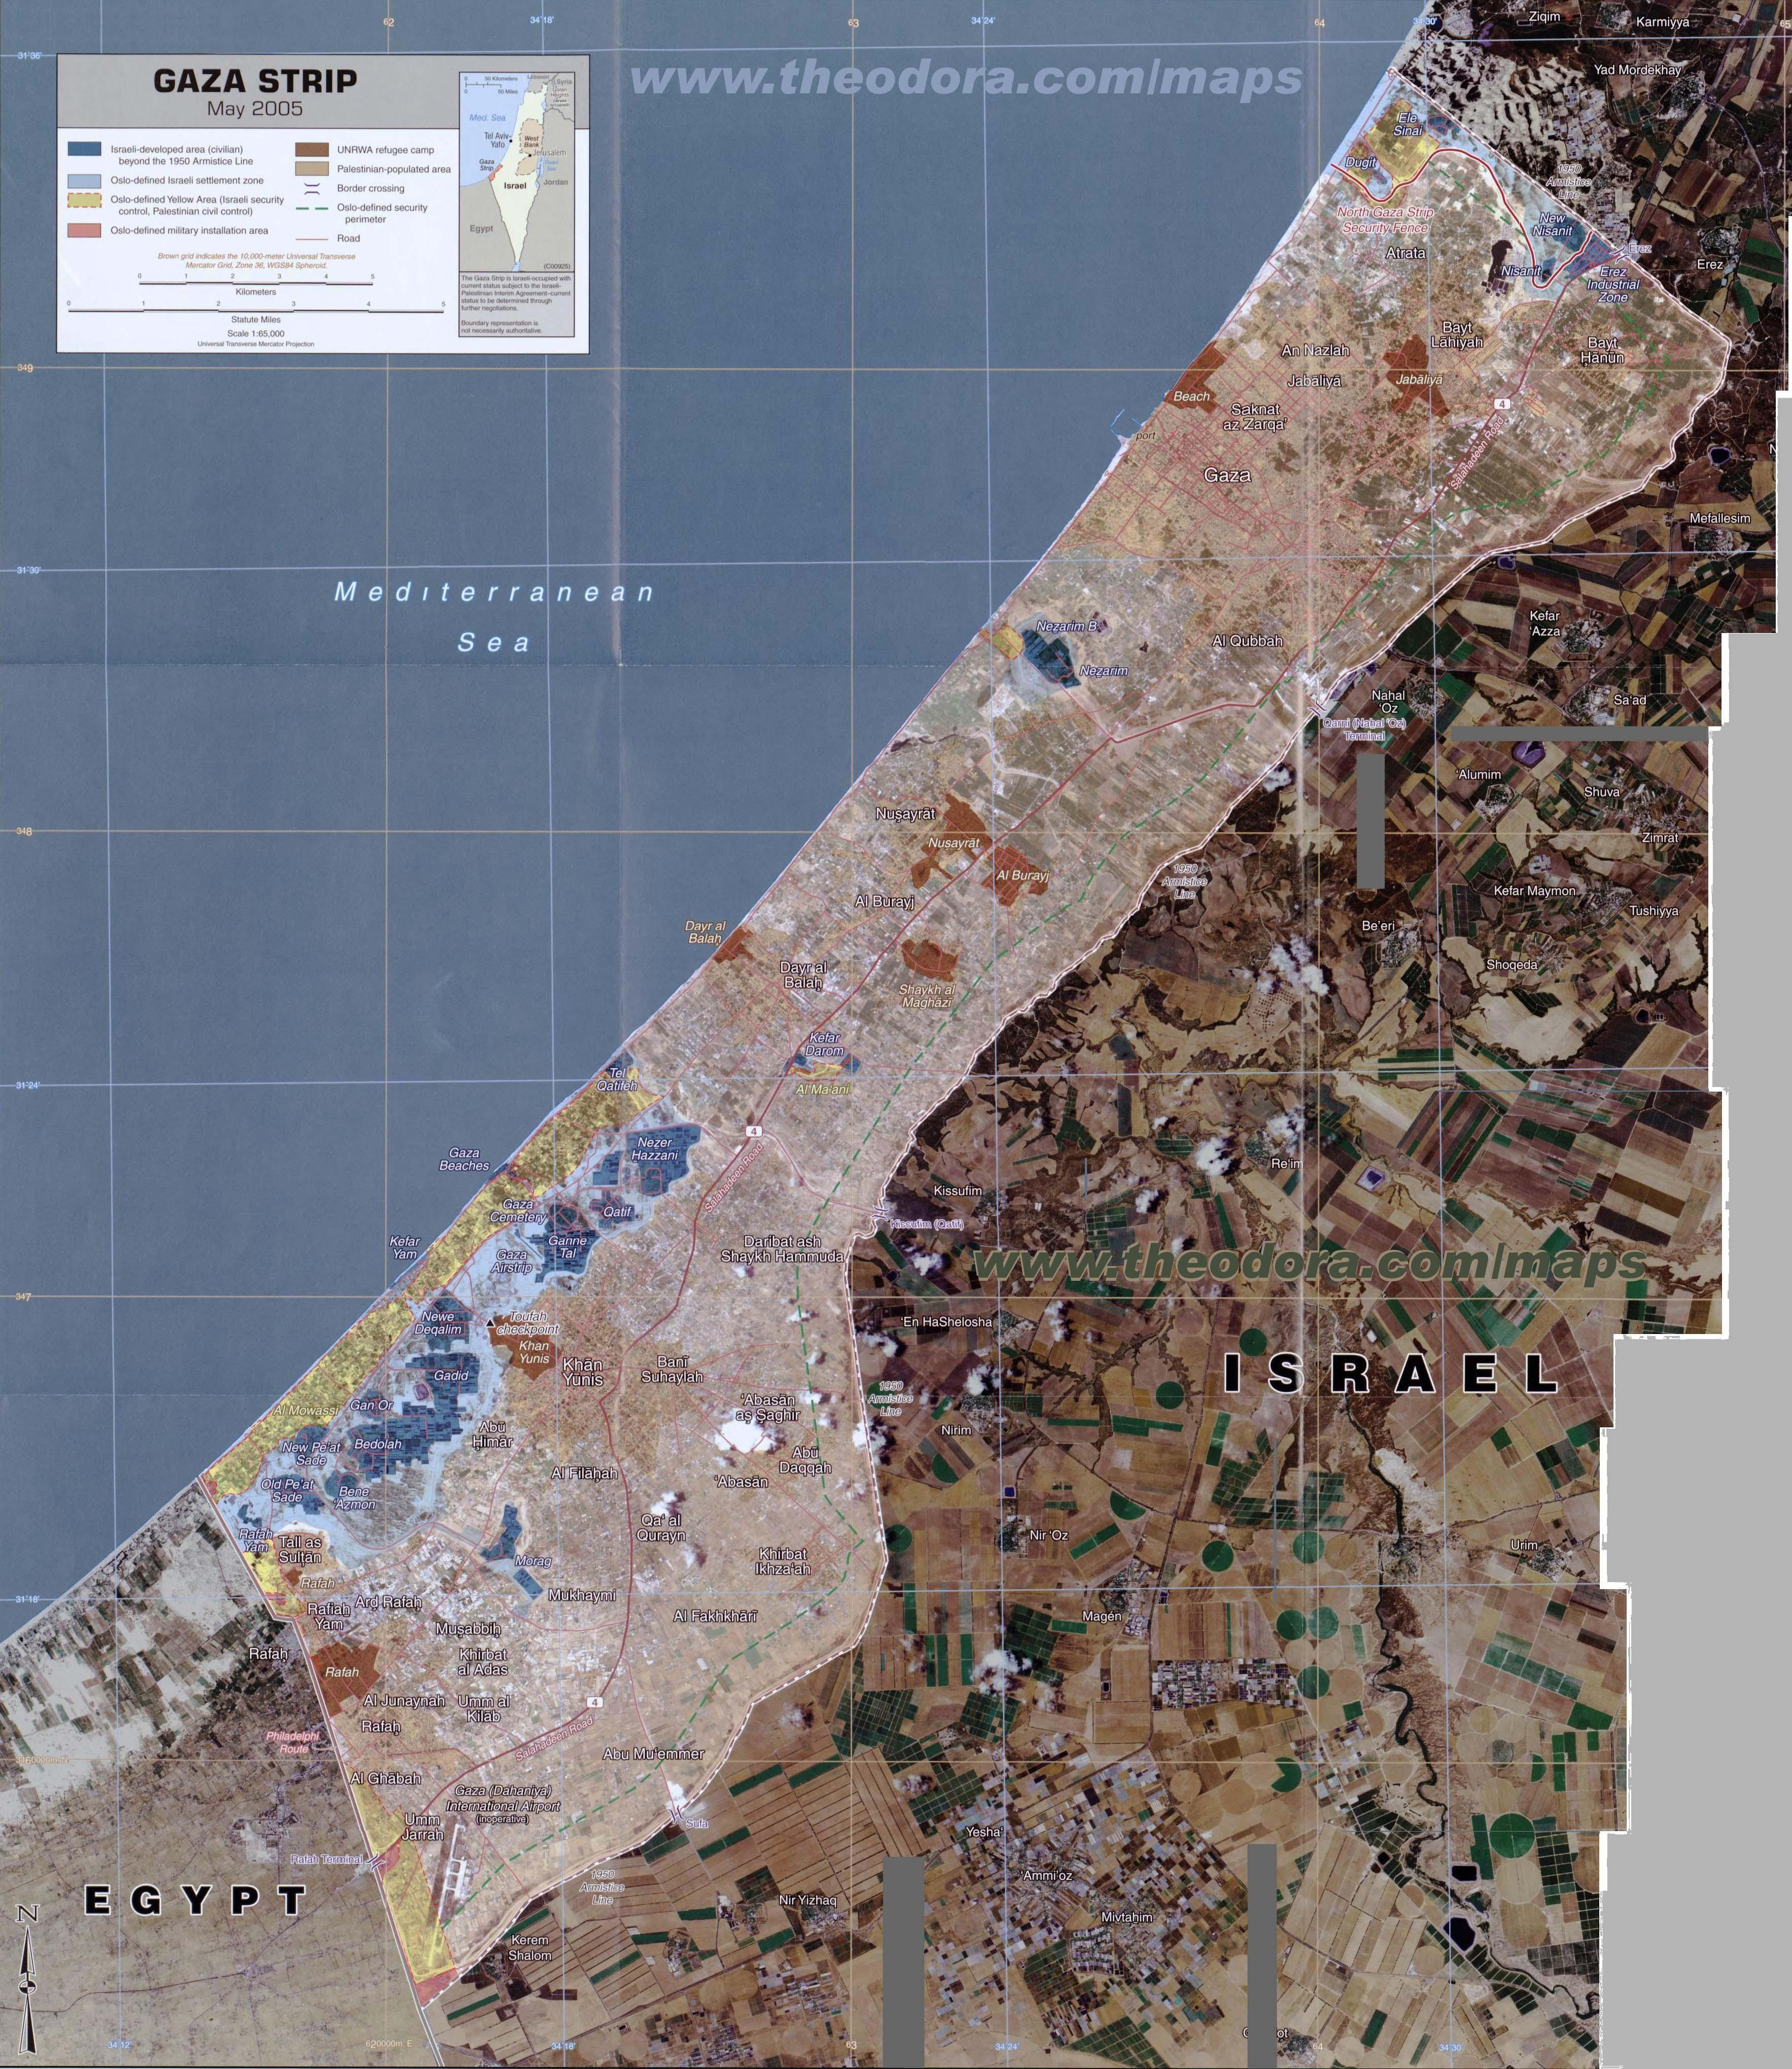 large scale detailed annotated photo-montage map of Gaza Strip